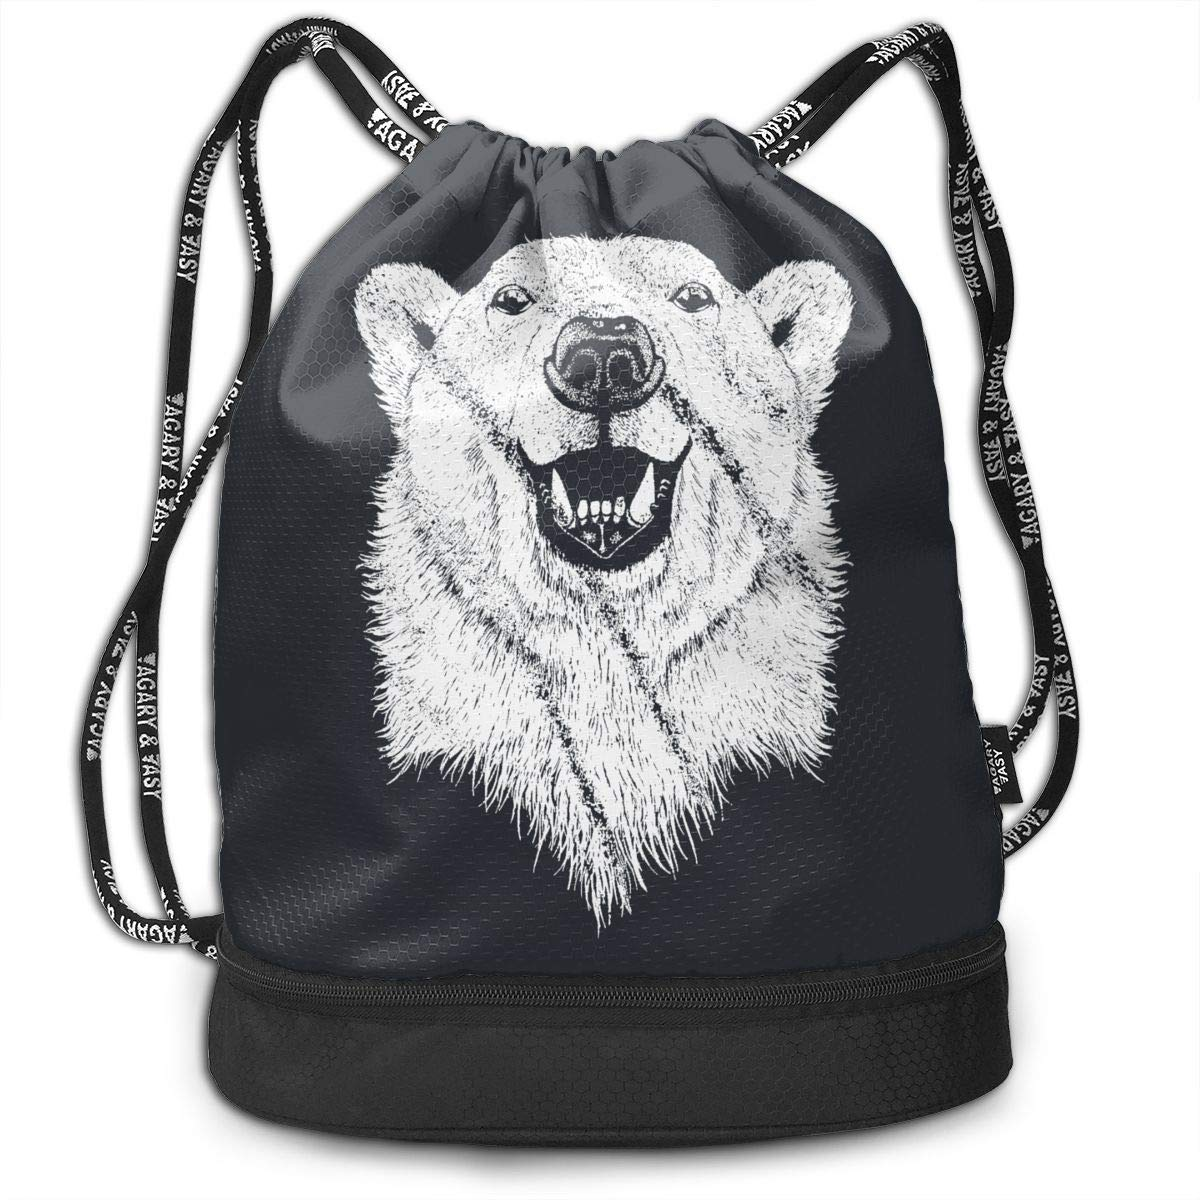 Address Verb Drawstring Backpack with Pocket Multifunctional Sturdy Bear by Address Verb